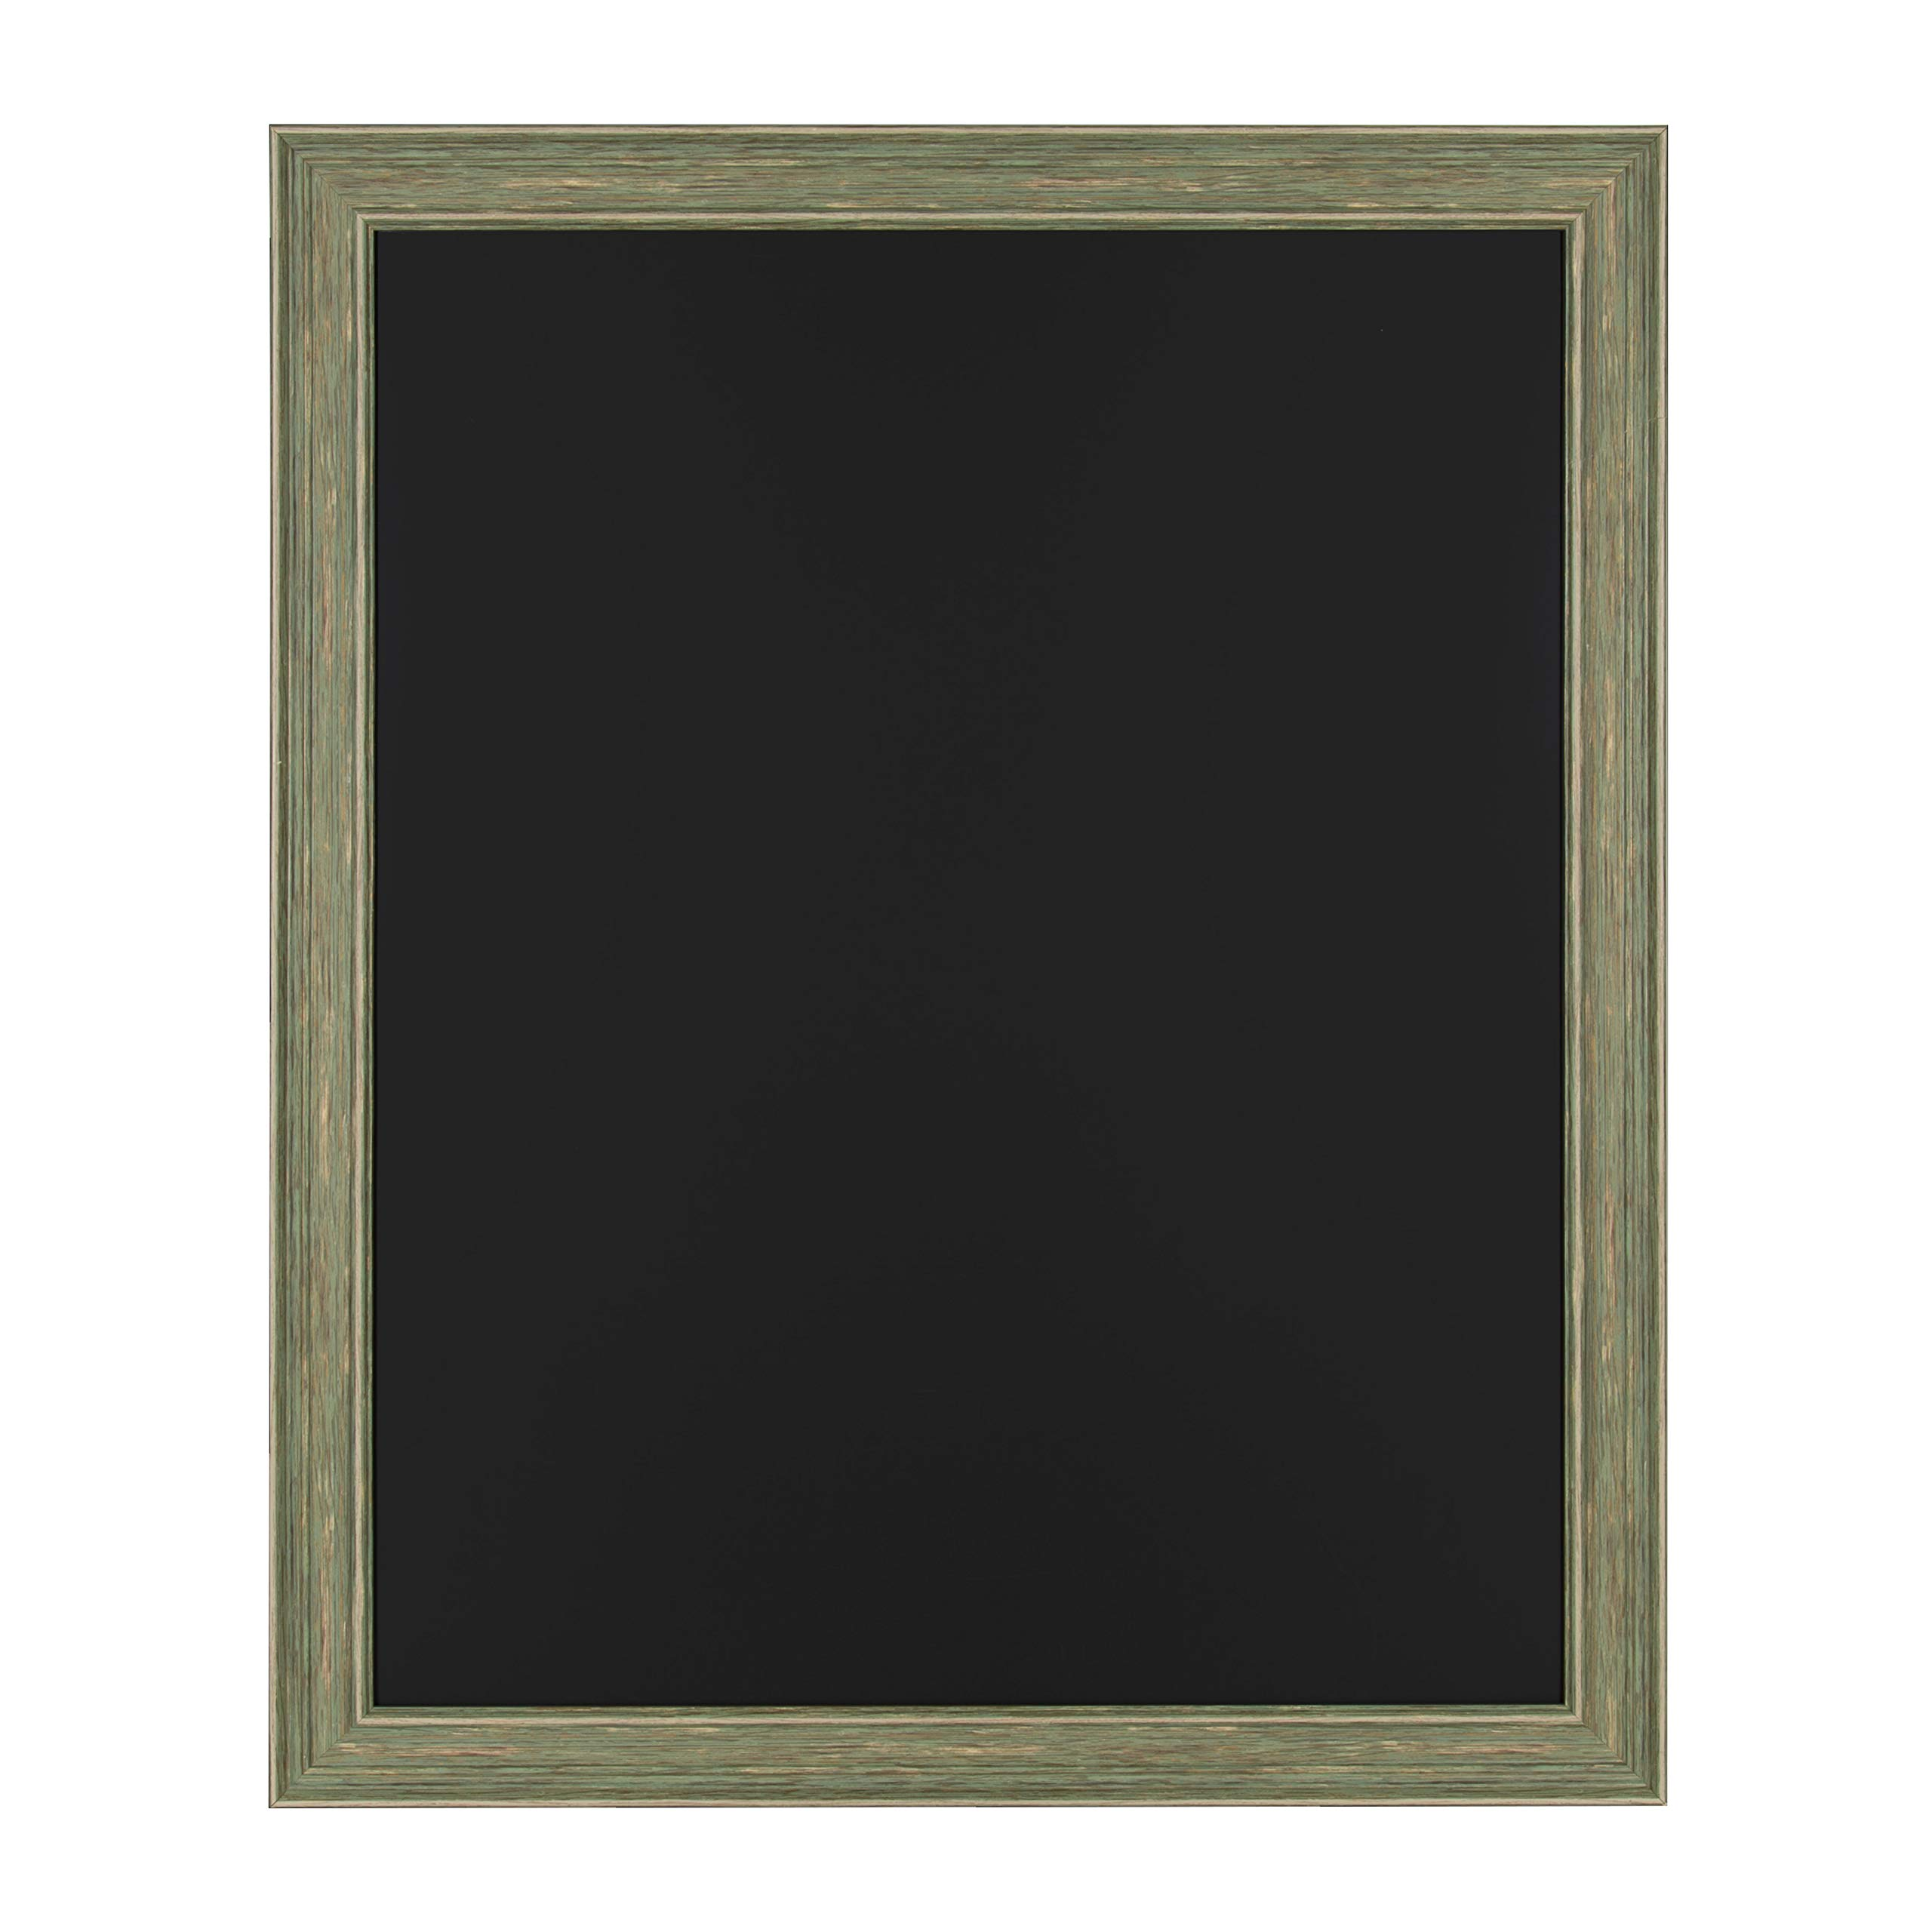 Kate and Laurel Harvest Decorative Magnetic Chalkboard, 27.5 x 33.5 Inches, Rustic Green by Kate and Laurel